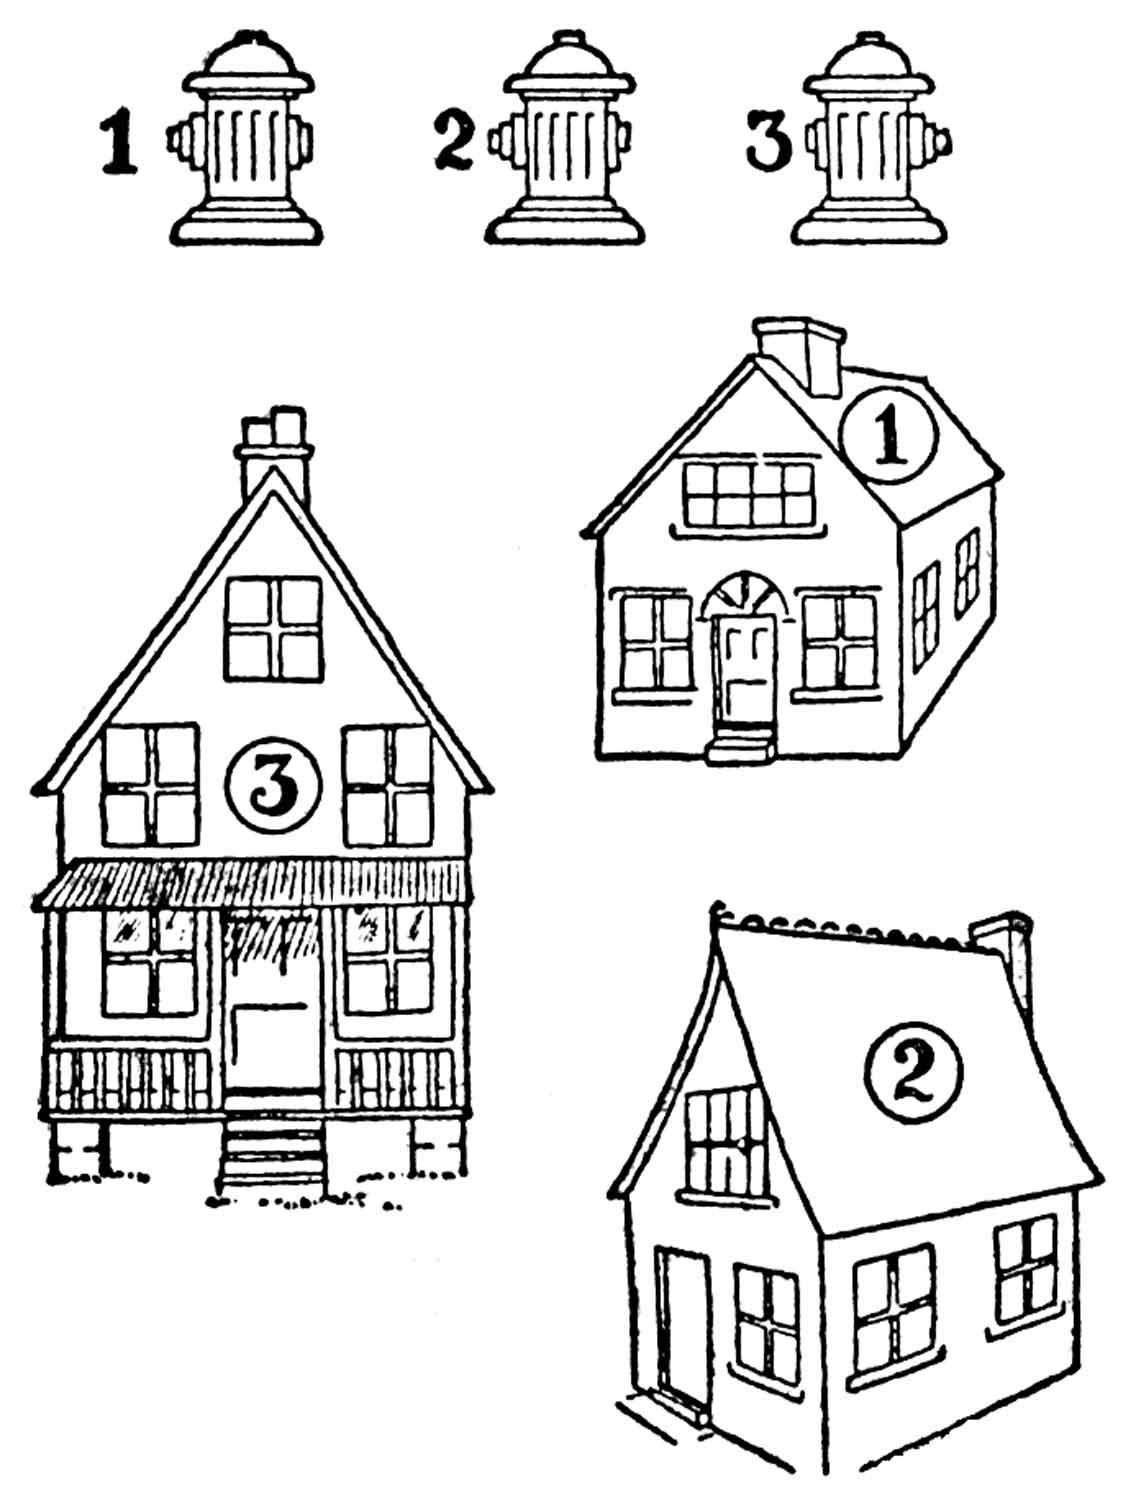 easy to draw mansion easy house sketch at paintingvalleycom explore mansion easy to draw